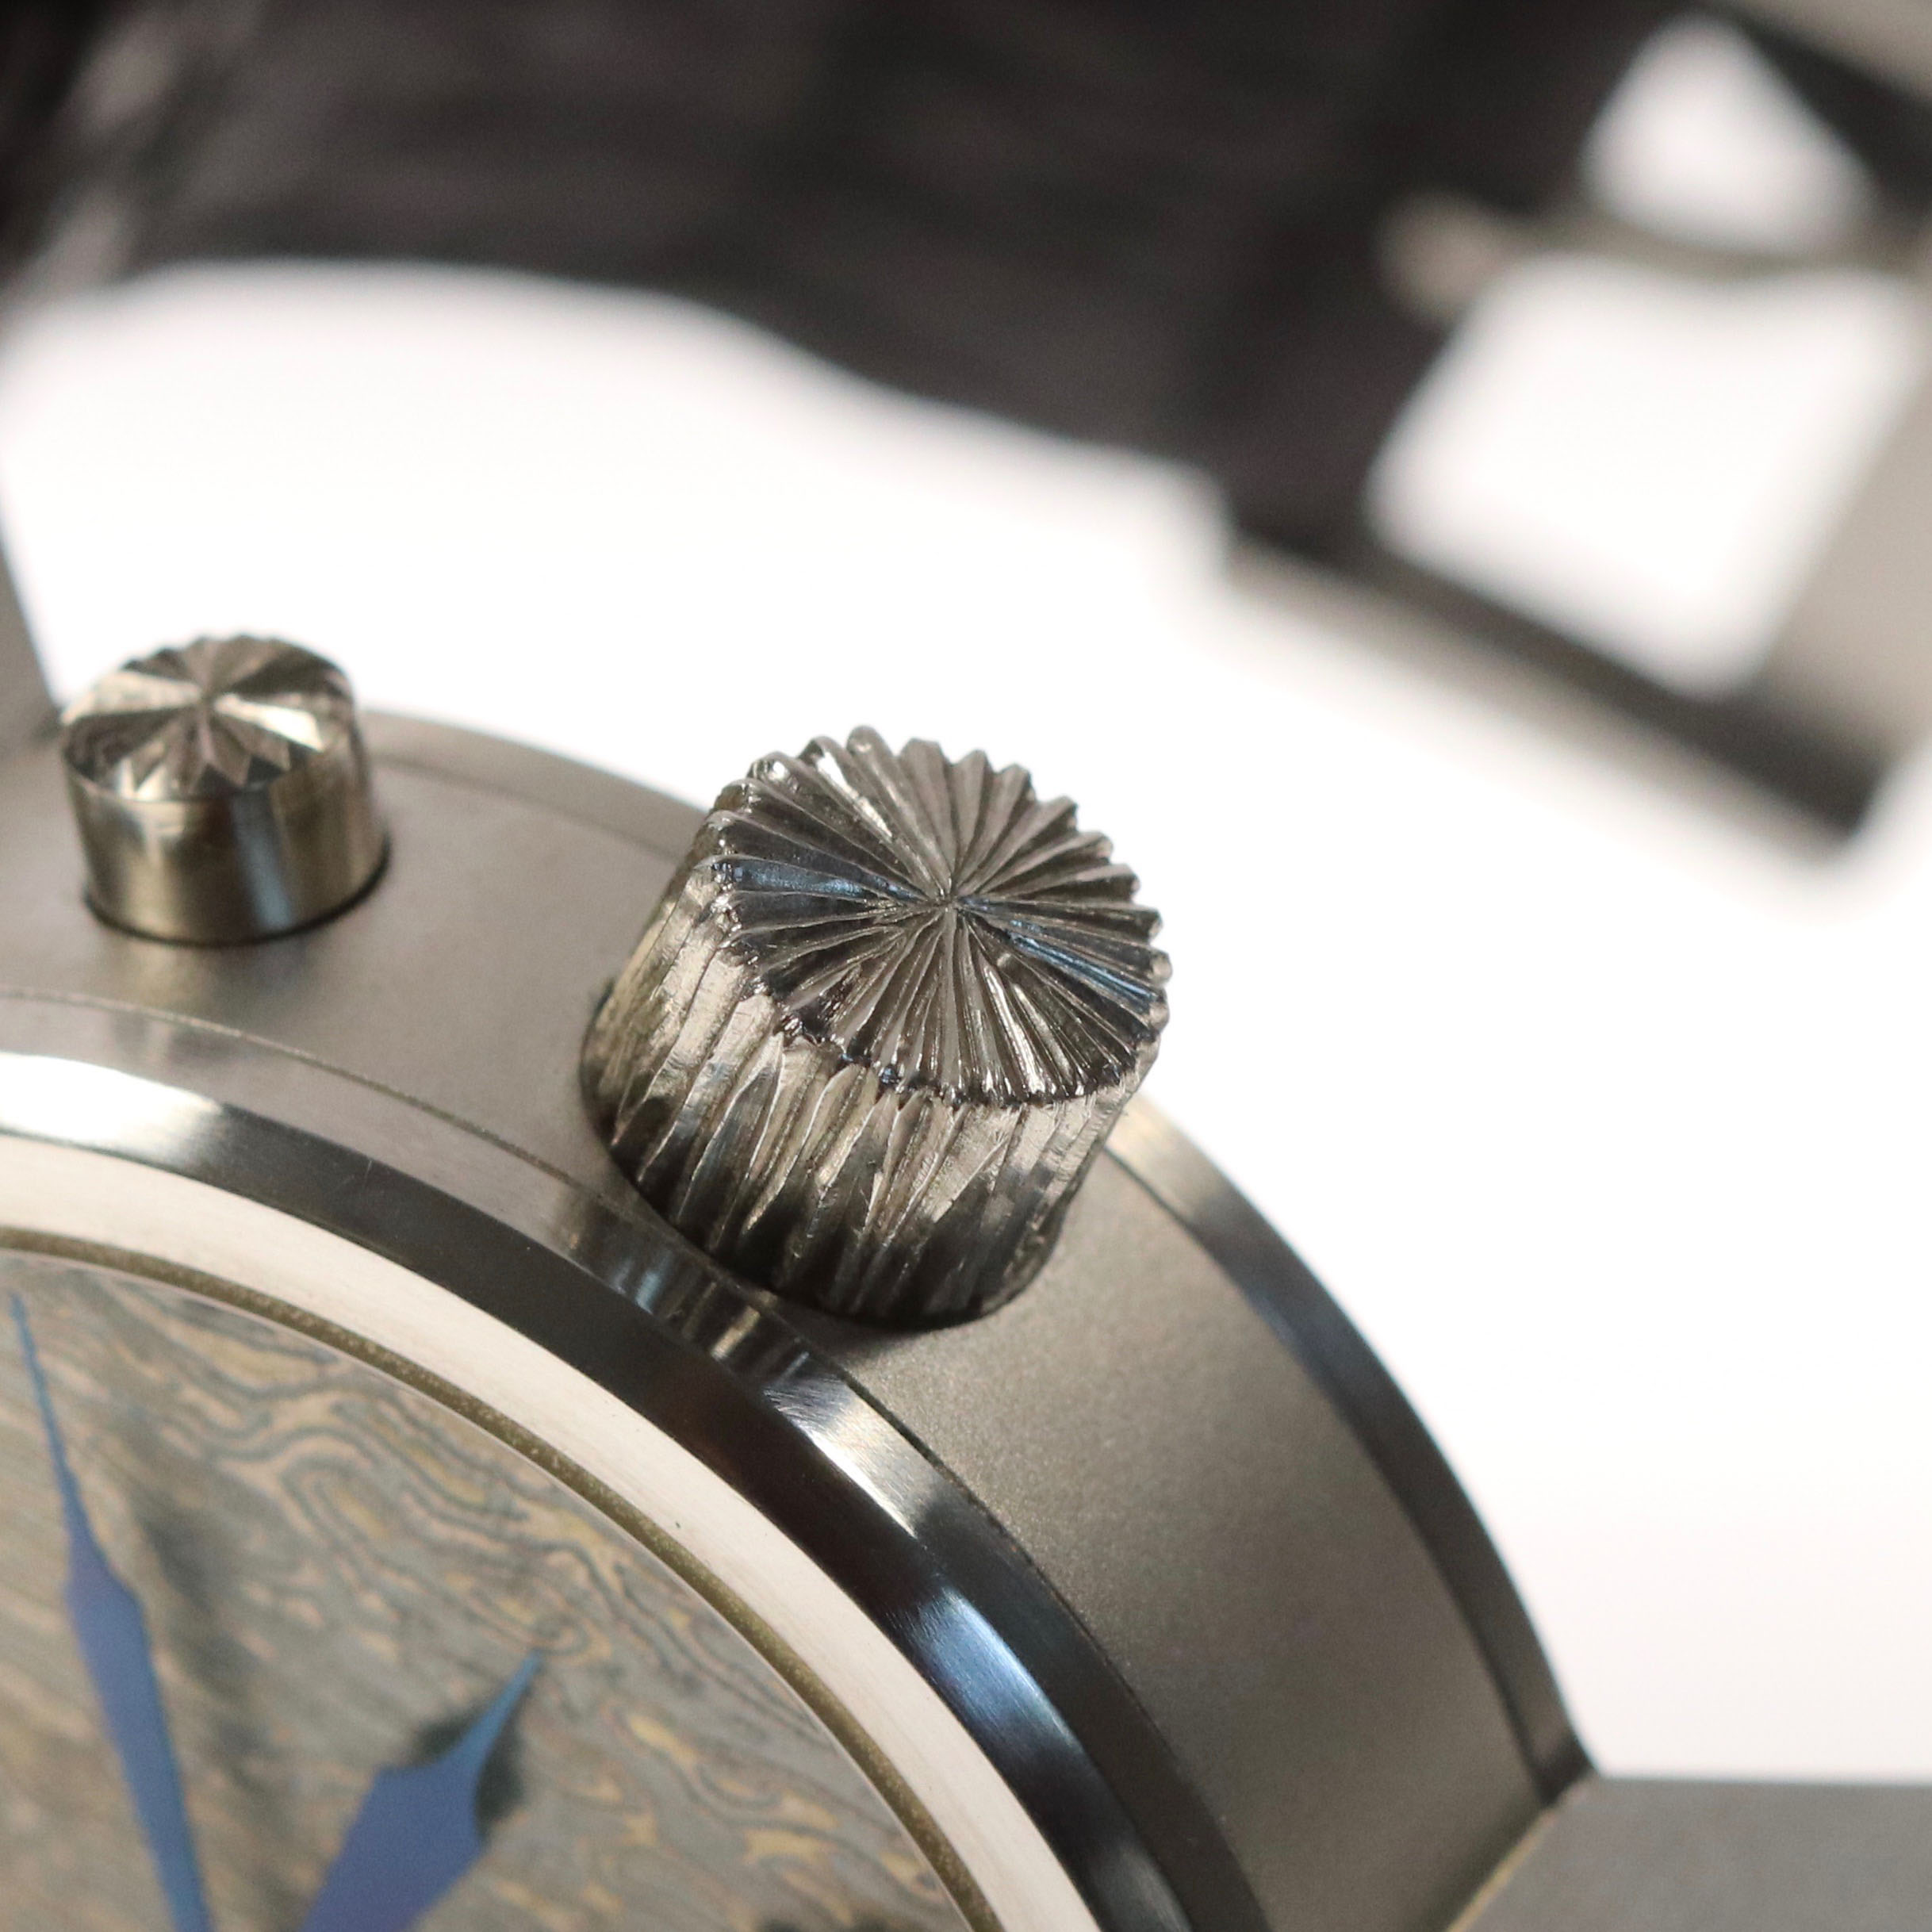 The winding crown also follows the same wood effect hand engraved as the pusher